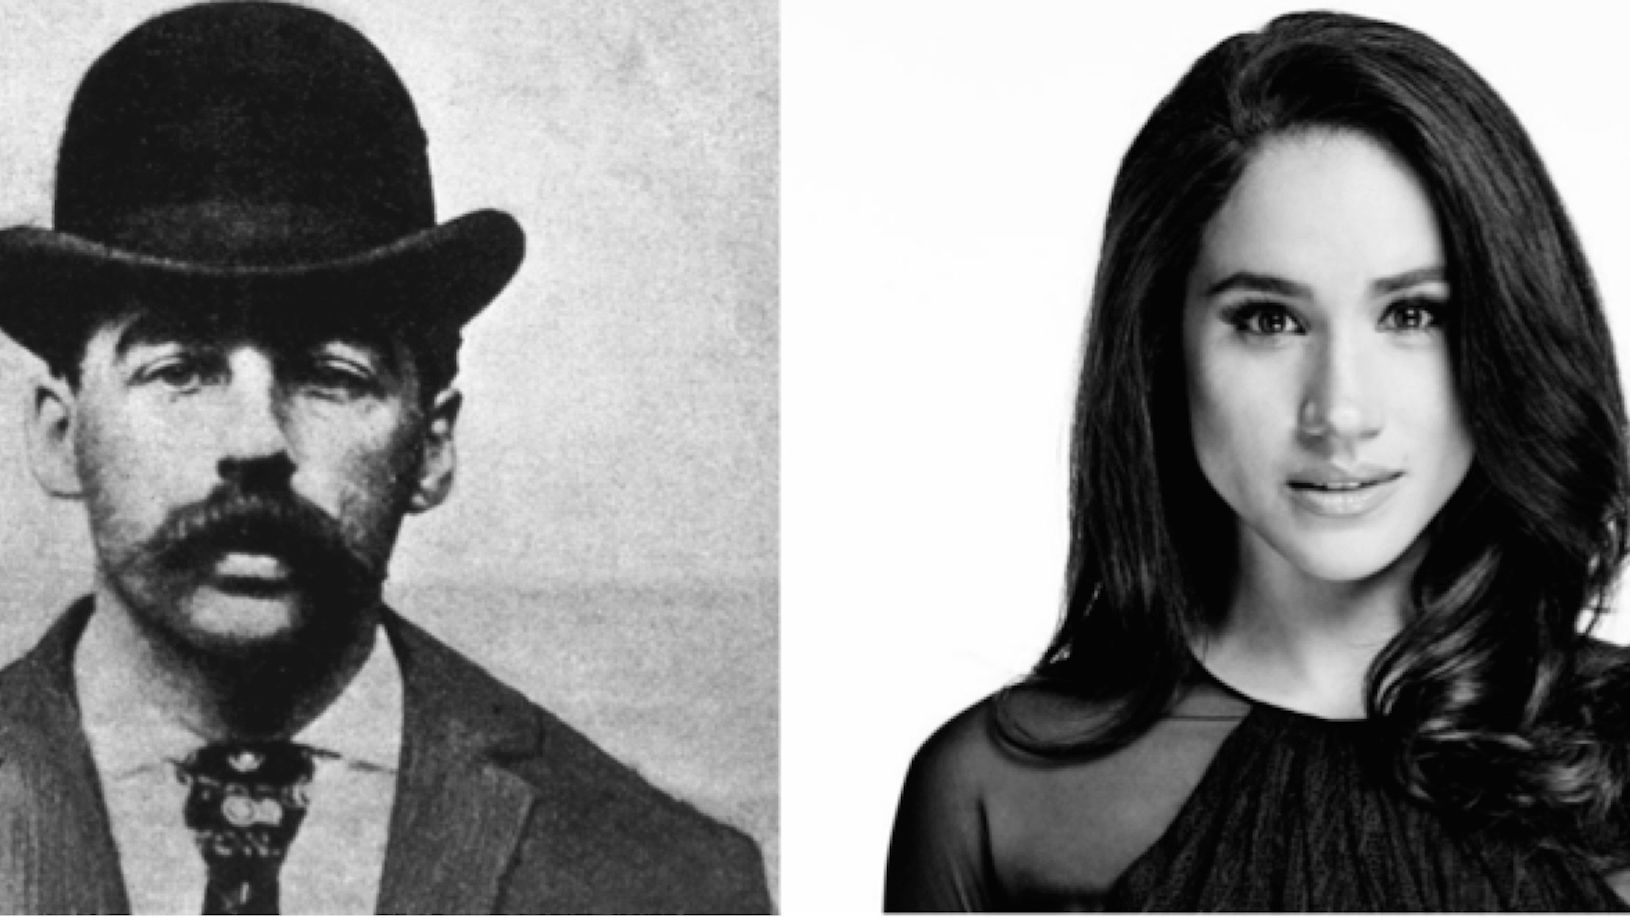 Meghan Markle Is Related To H H Holmes America S First Serial